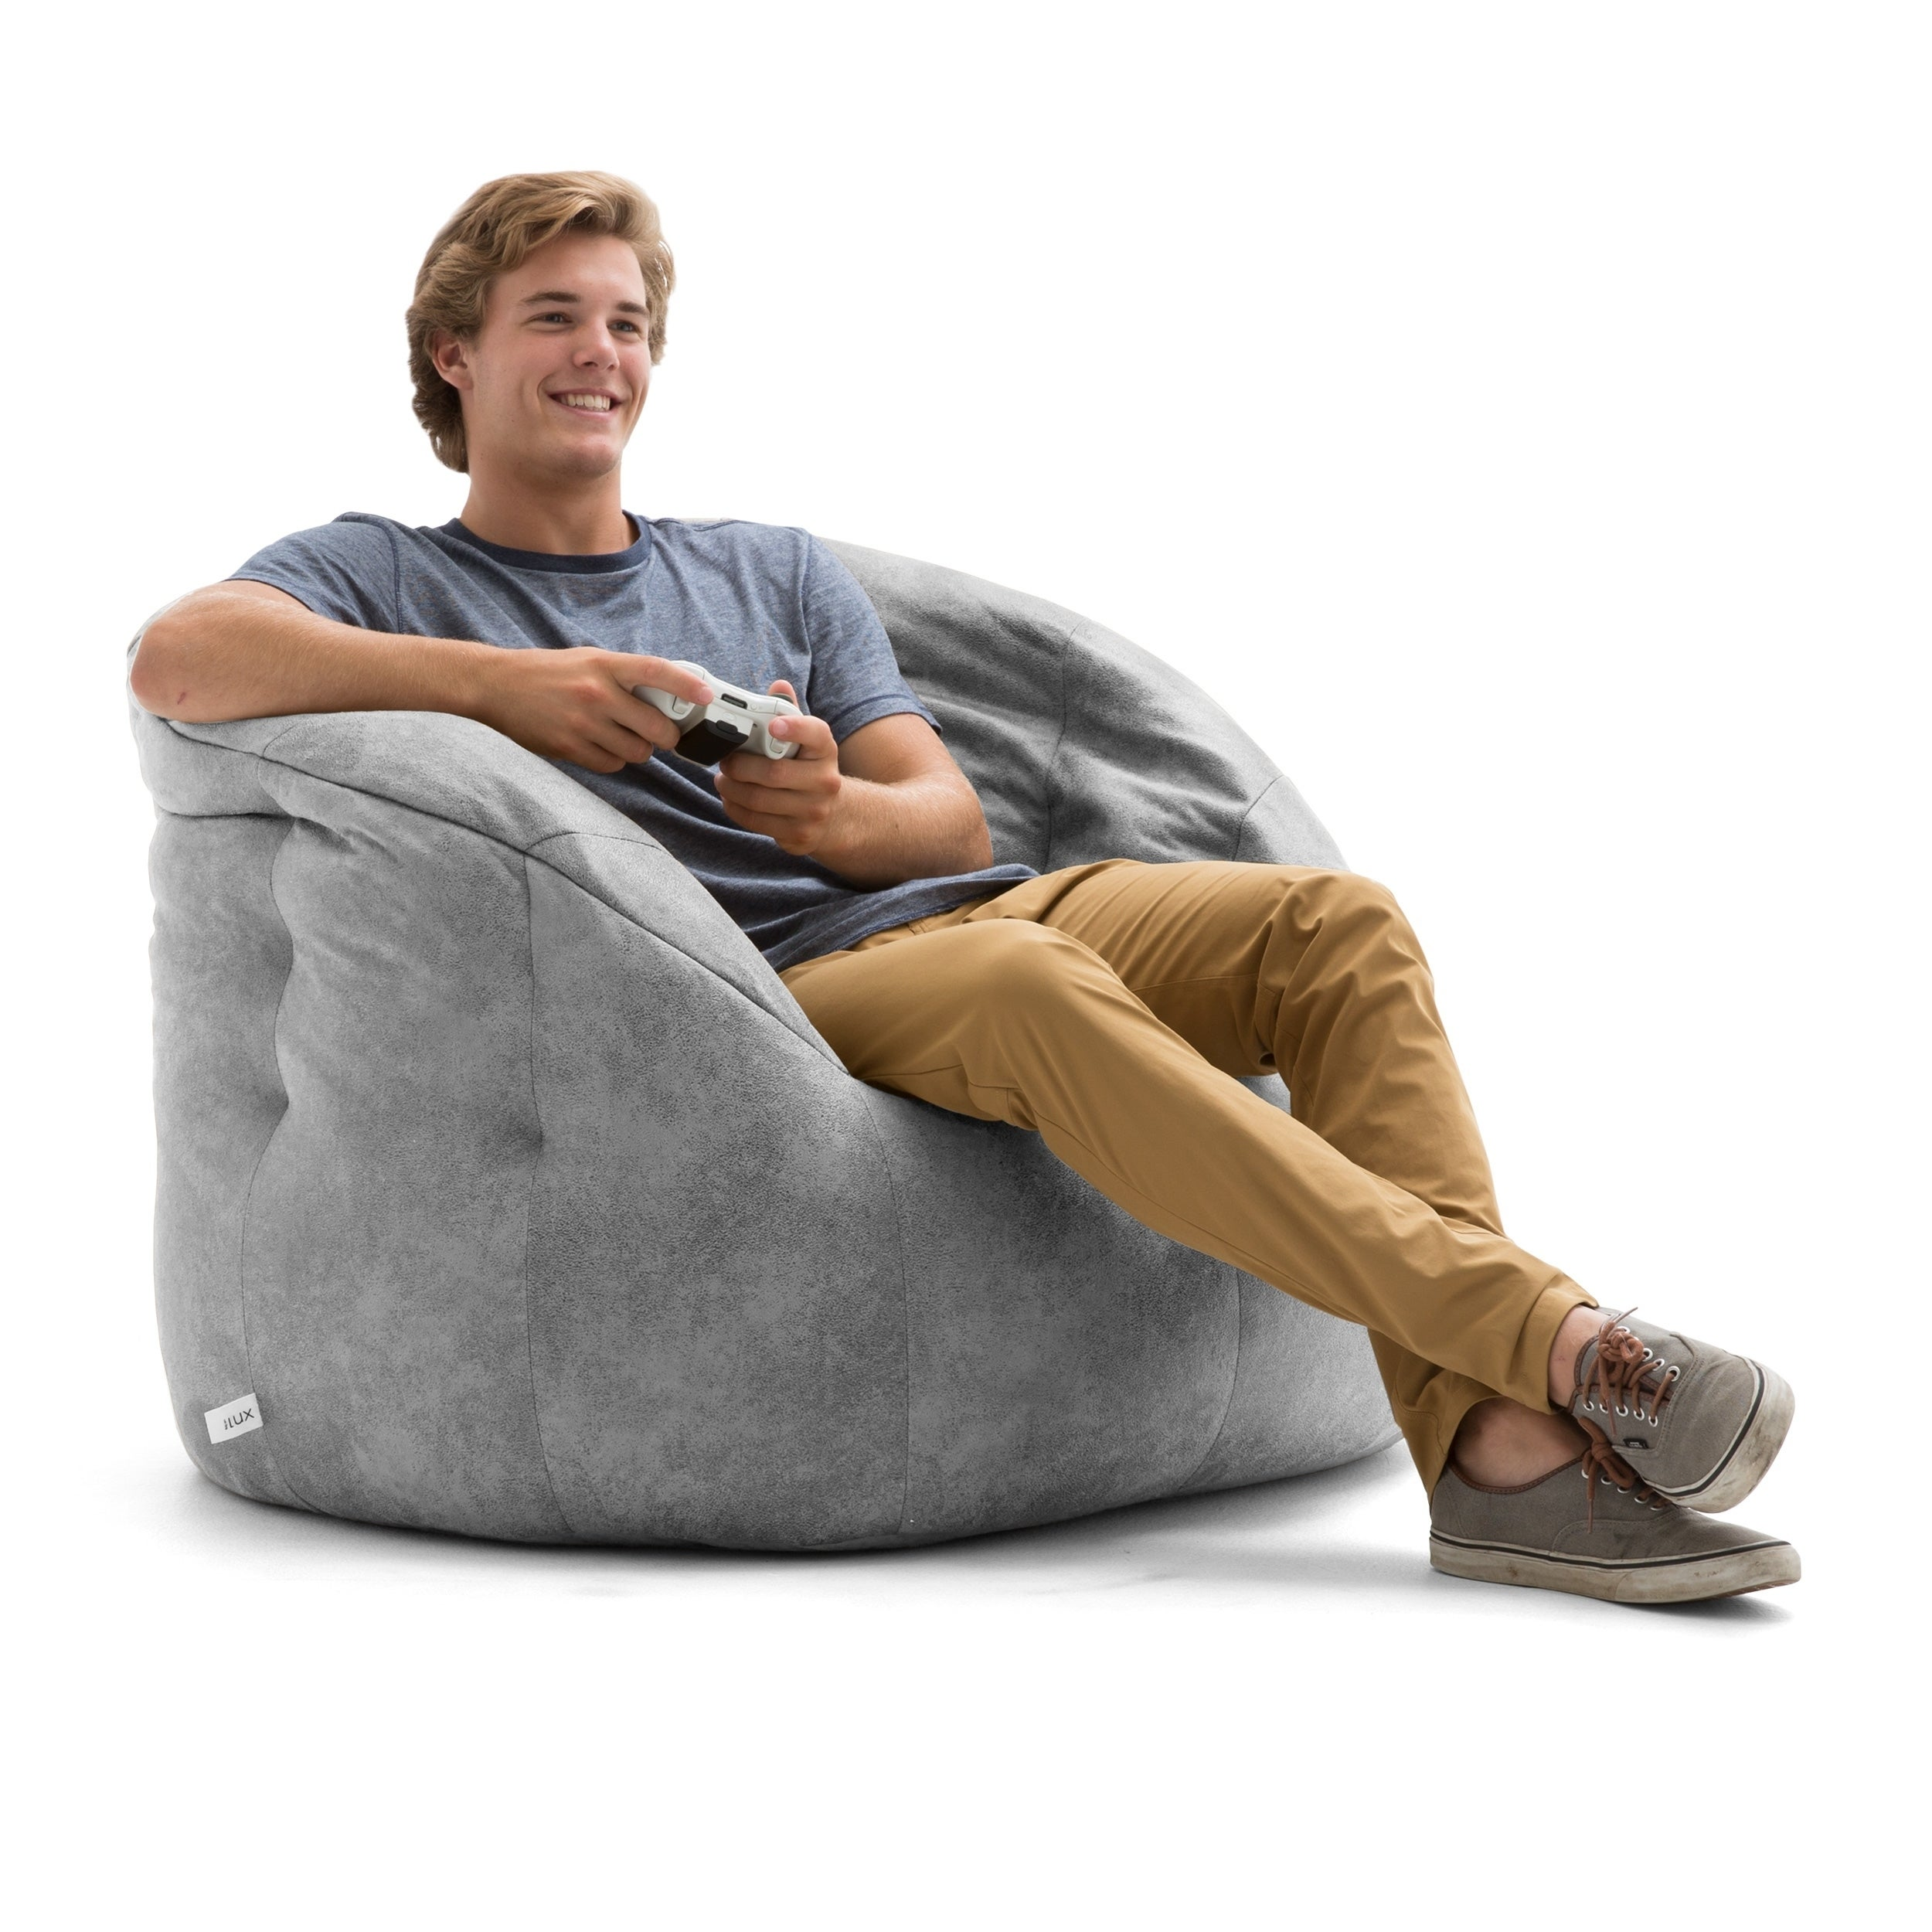 Joe Lux Large Milano Blazer Bean Bag Chair Multiple Colors Free Shipping Today 12927618